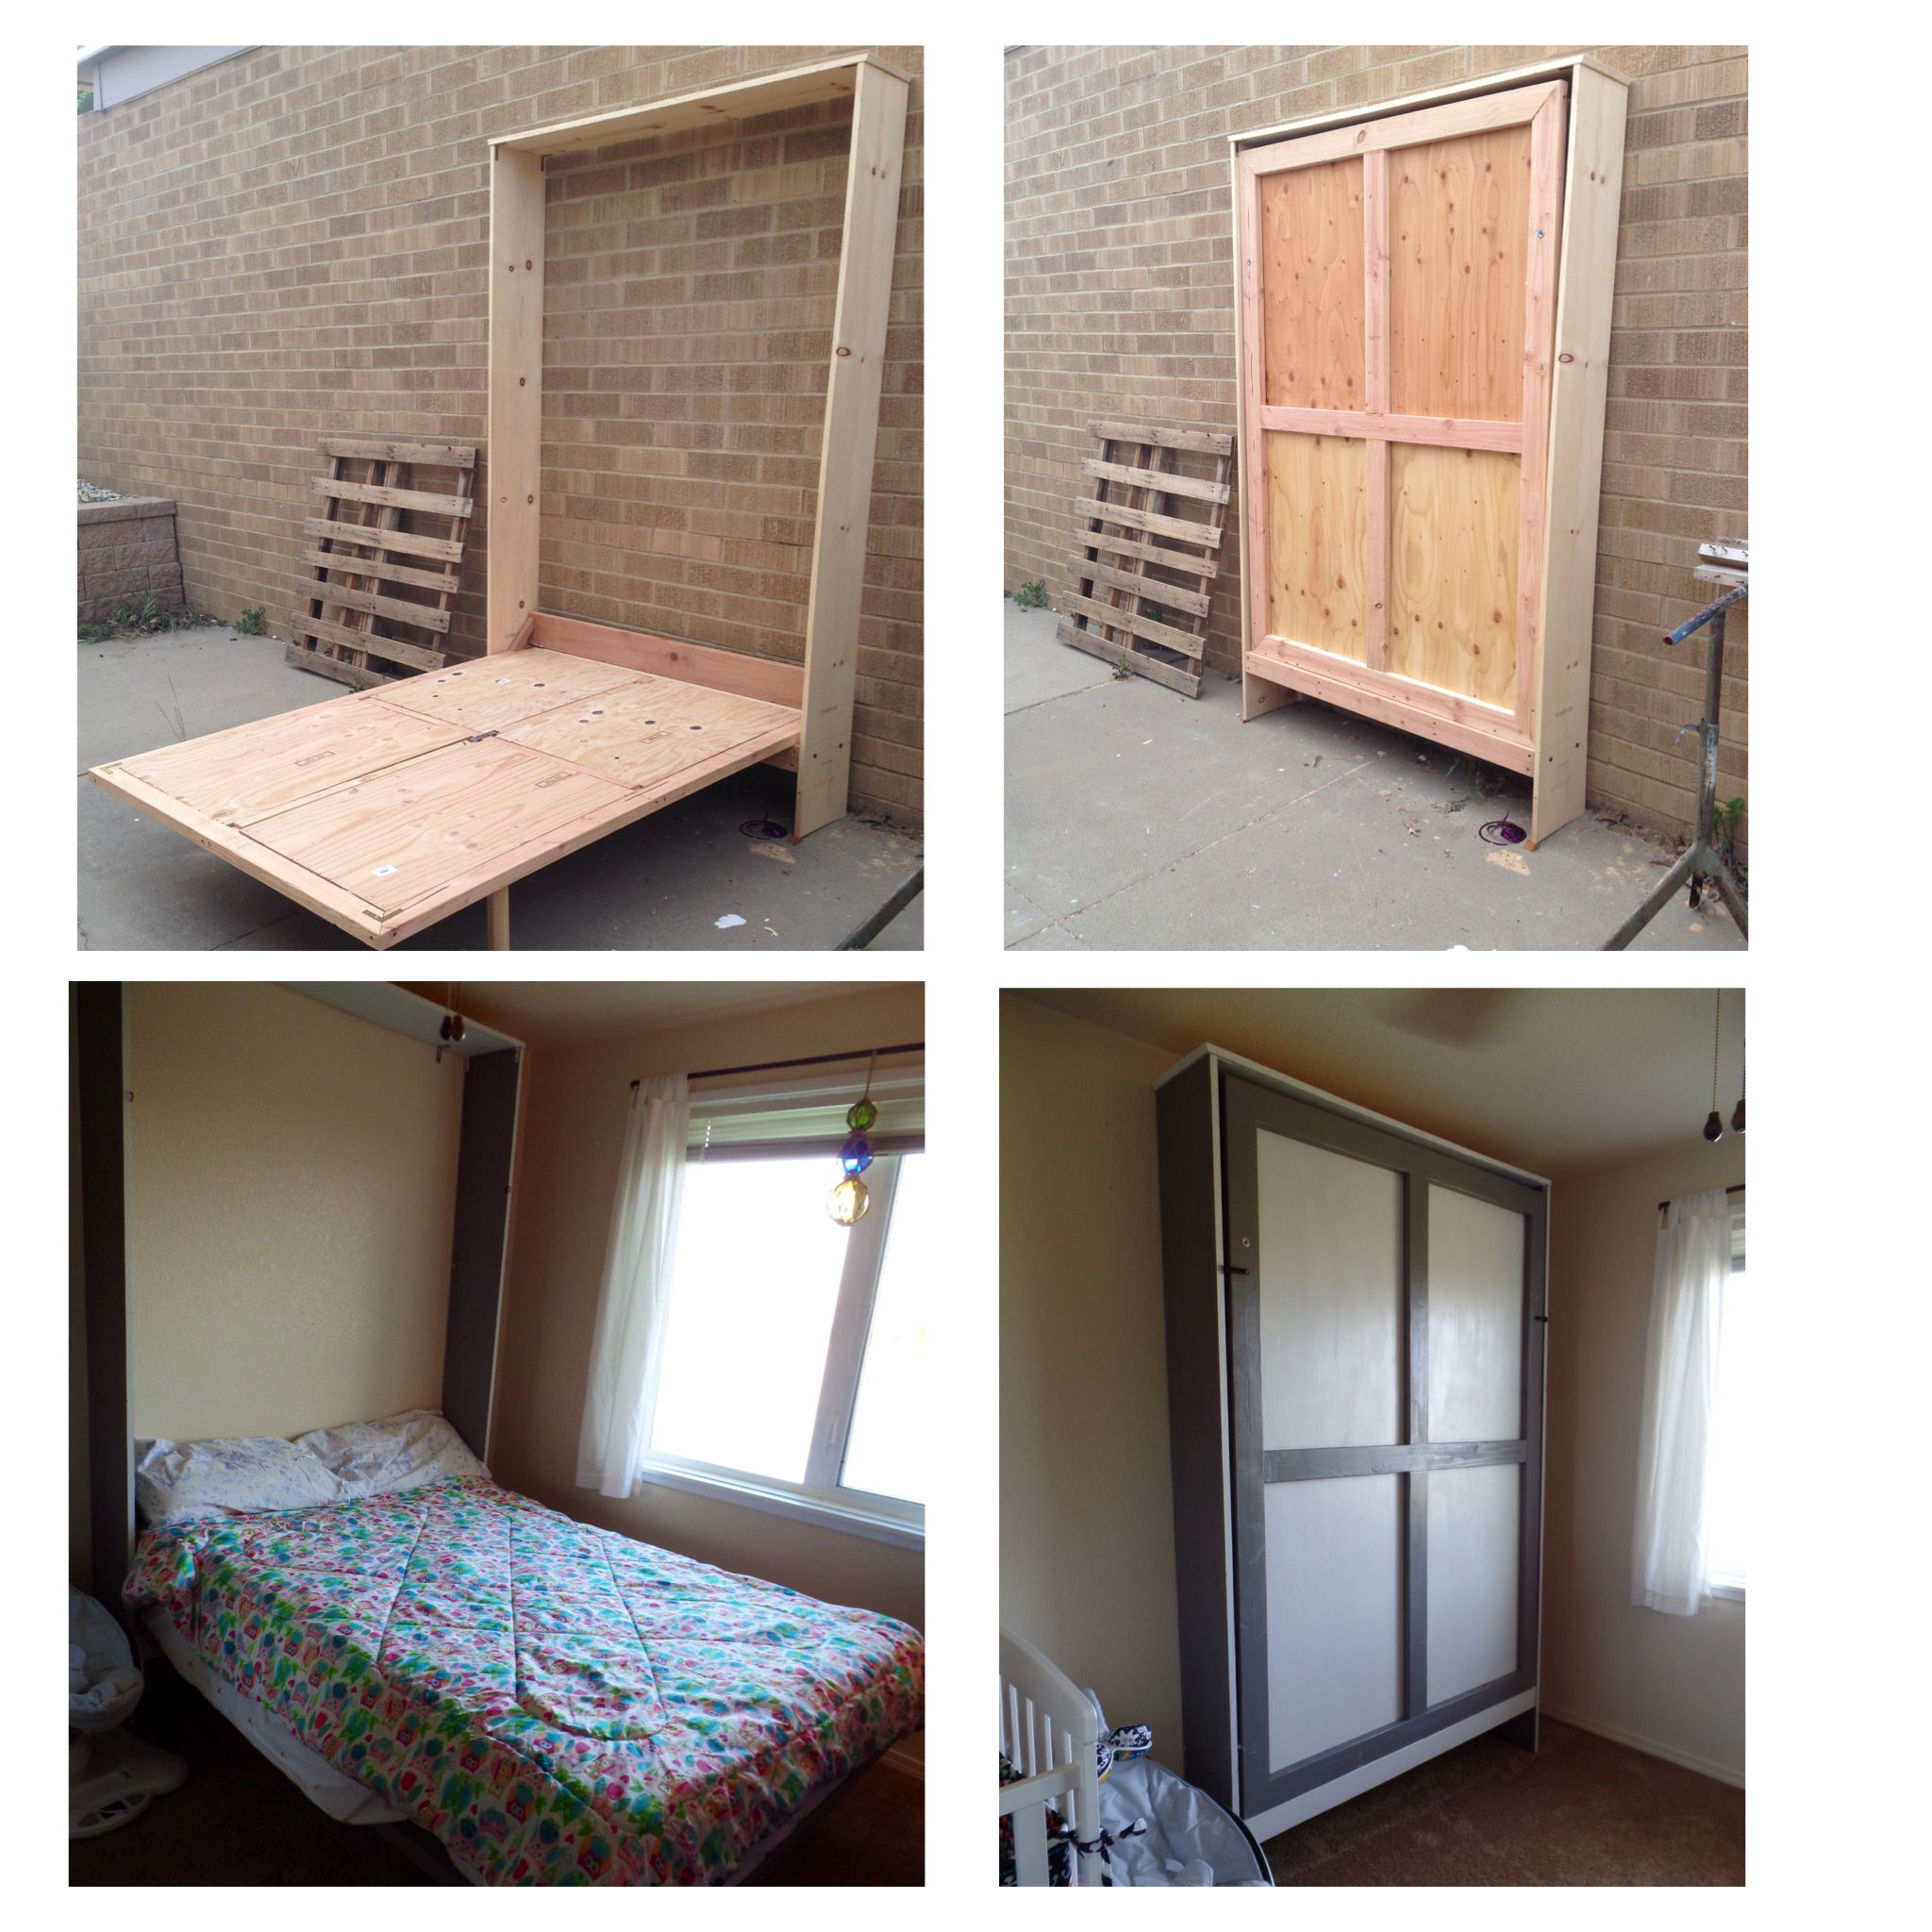 Full Sized Murphy Bed My Hubby Made He Fashioned Hinges So It